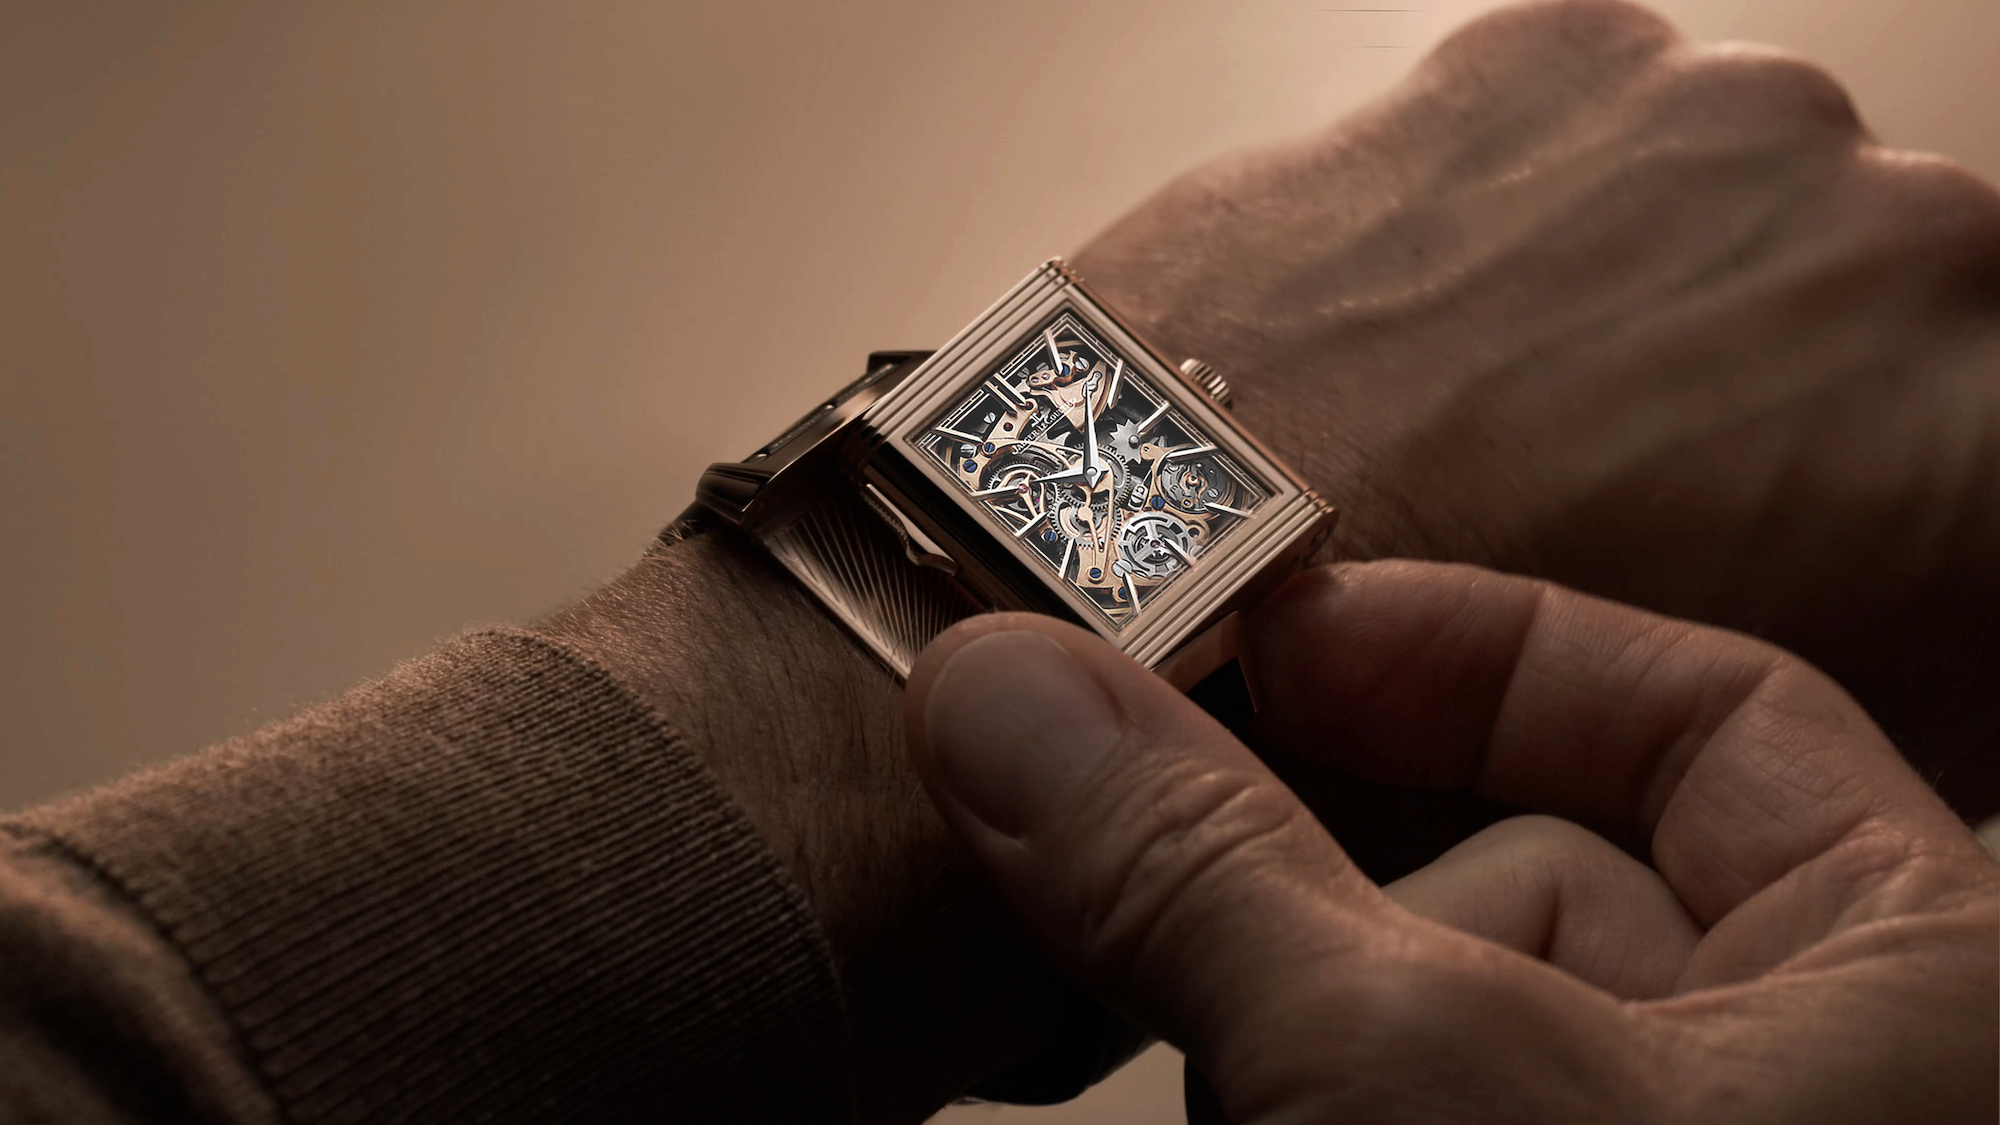 Jaeger-LeCoultre Reverso Tribute Minute Repeater Lifestyle wristshot frontal